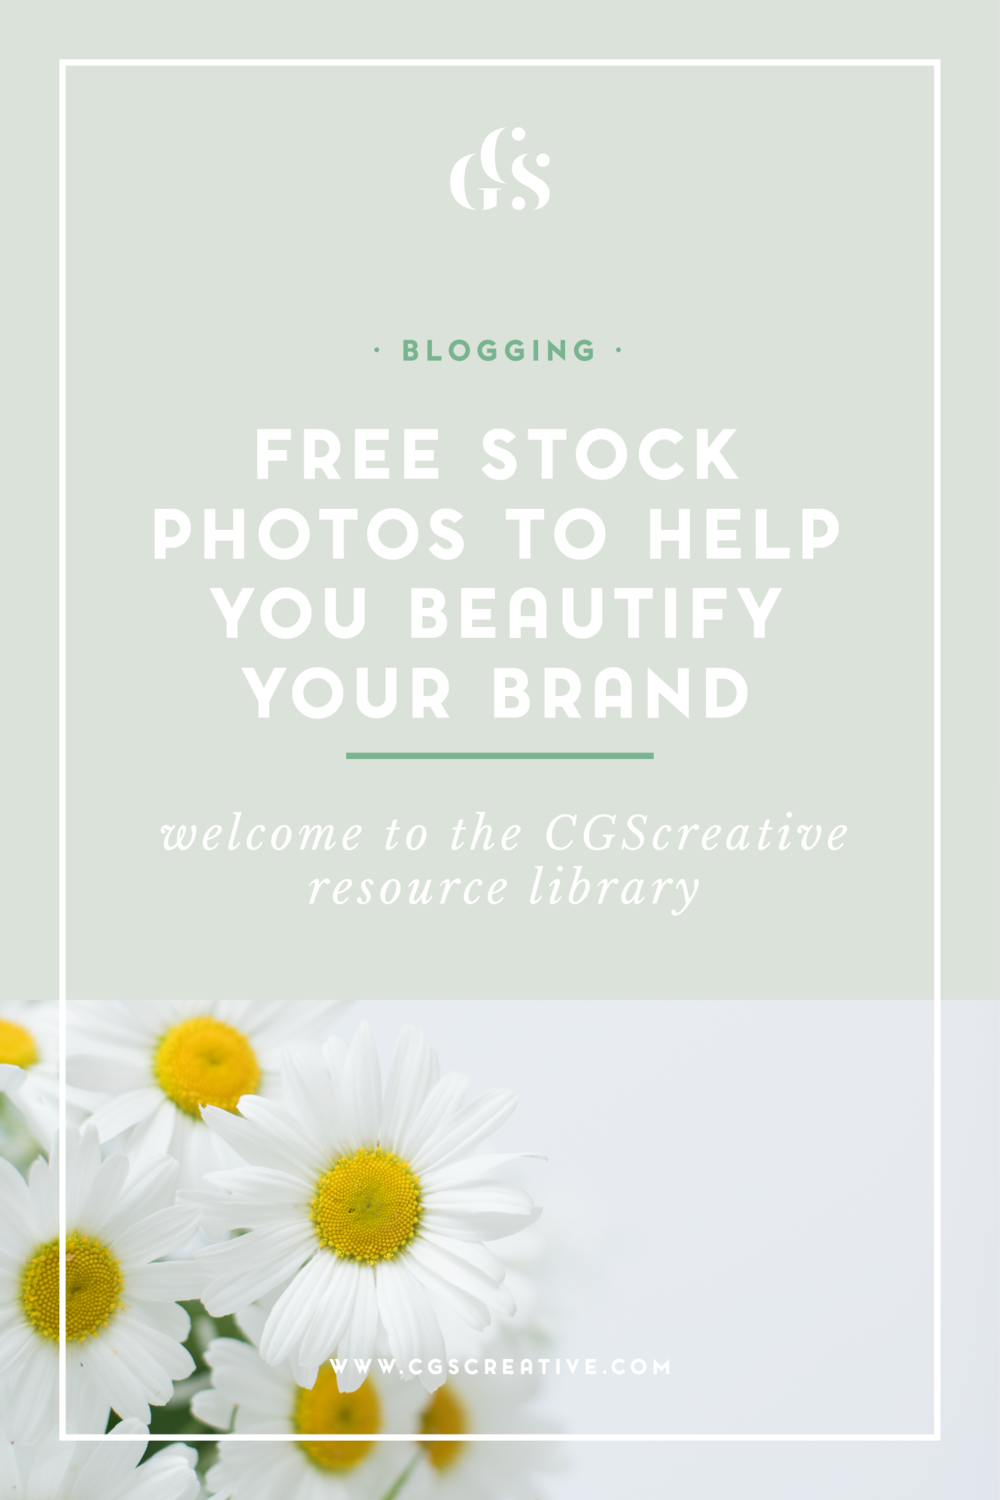 free resource for bloggers, where to find free stock photos, beautiful free stock photos for bloggers, cgscreative, nature stock photos for bloggers, free stock photos, brand photography